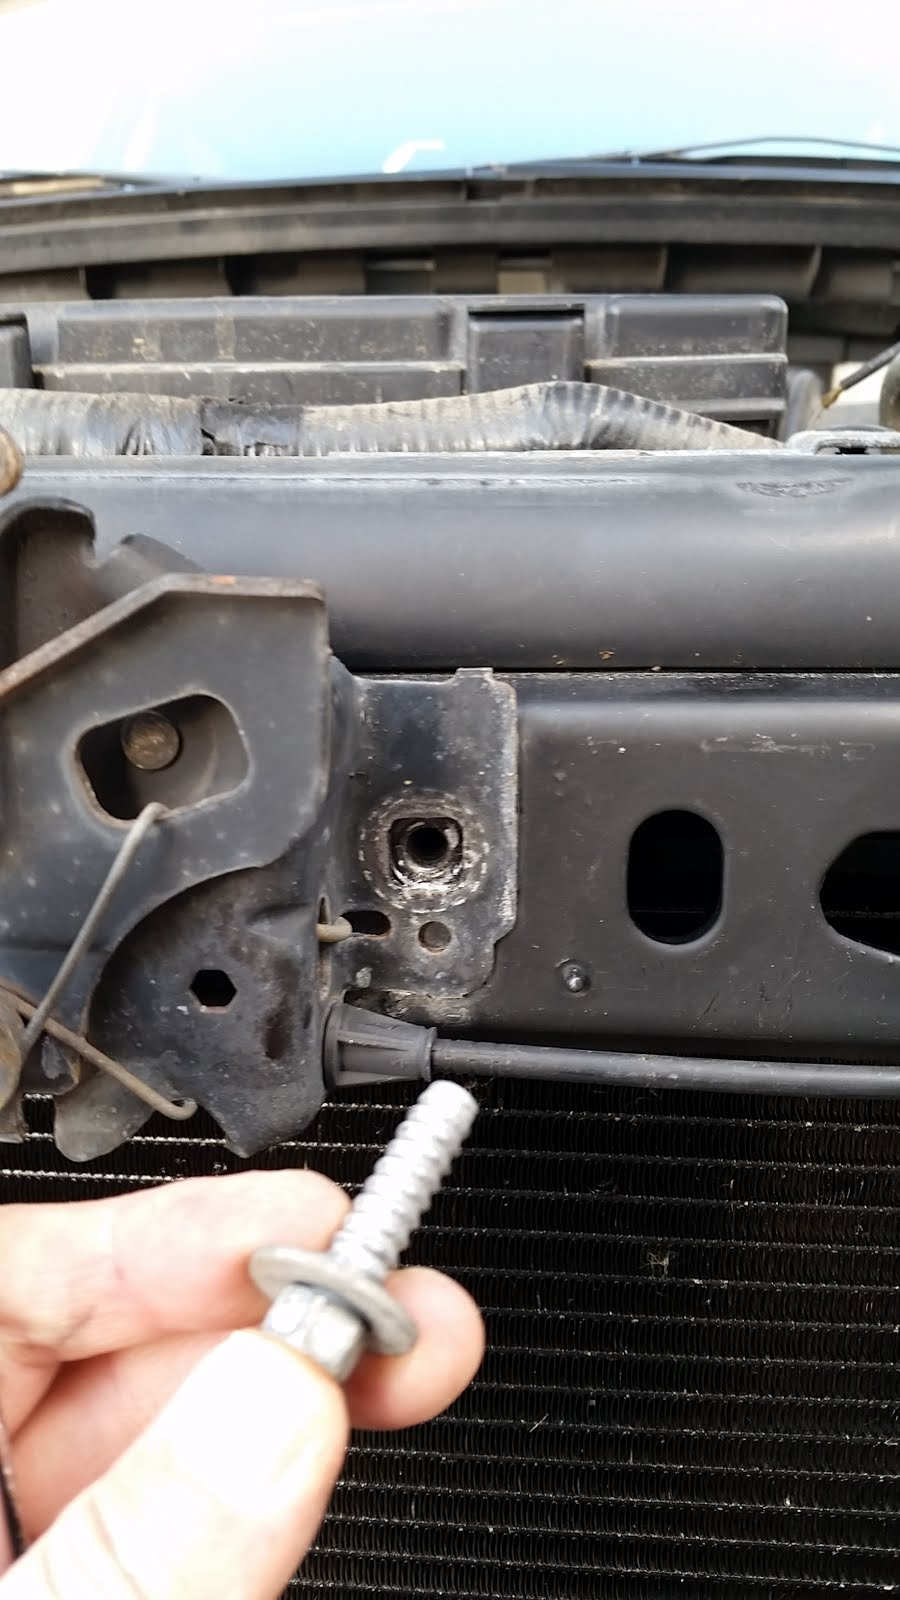 Installing an External Power Steering Cooler in a 2010 Ford